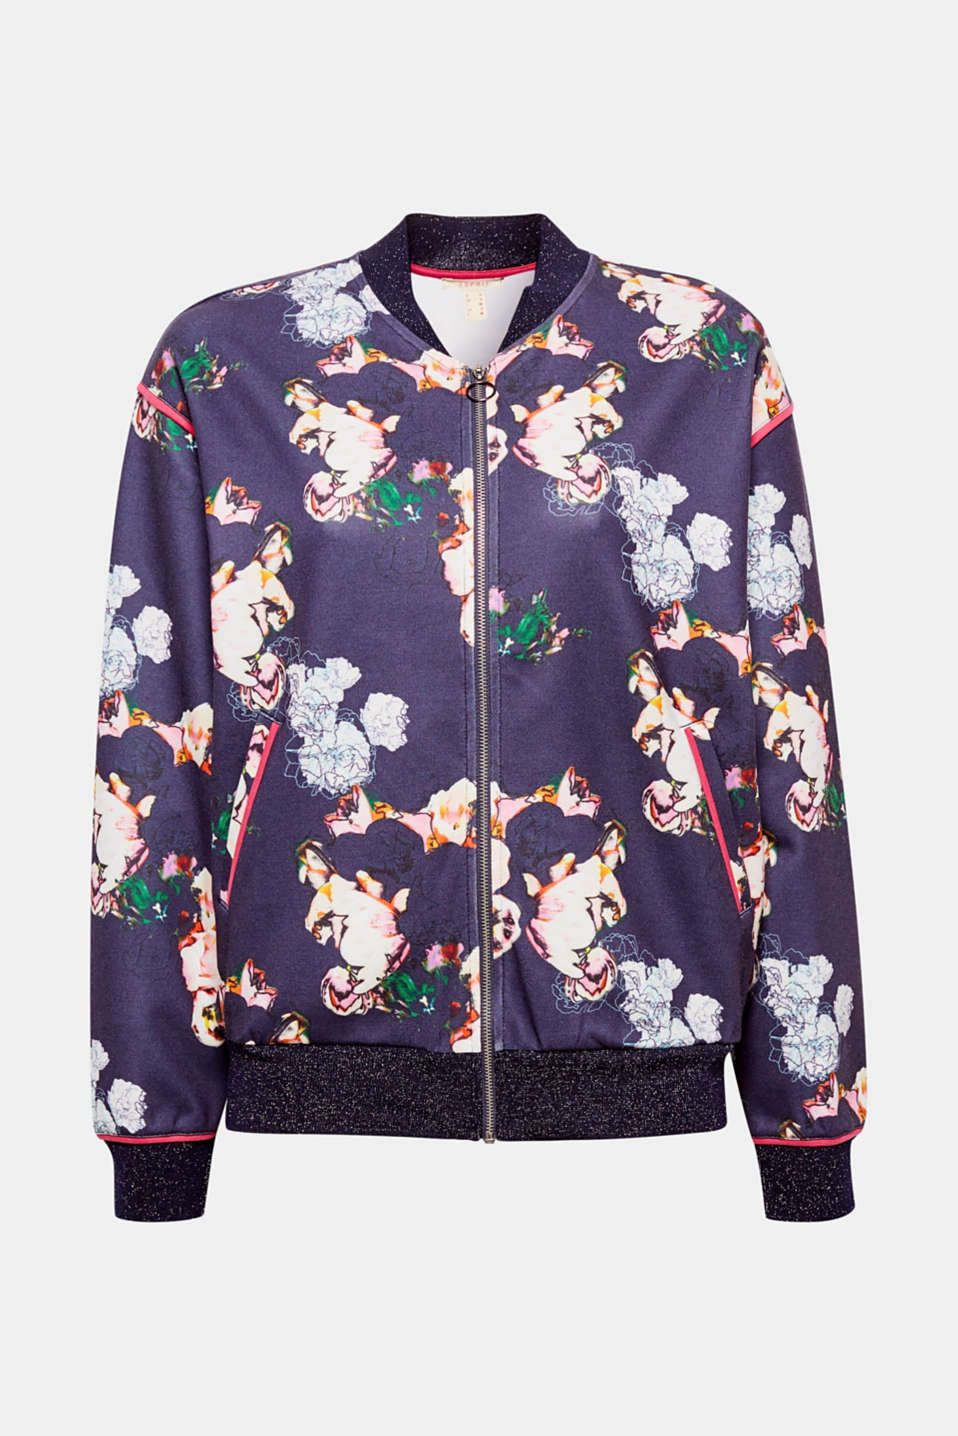 The bomber jacket has just become feminine: with a striking, colourful floral print and glittery knitted cuffs!